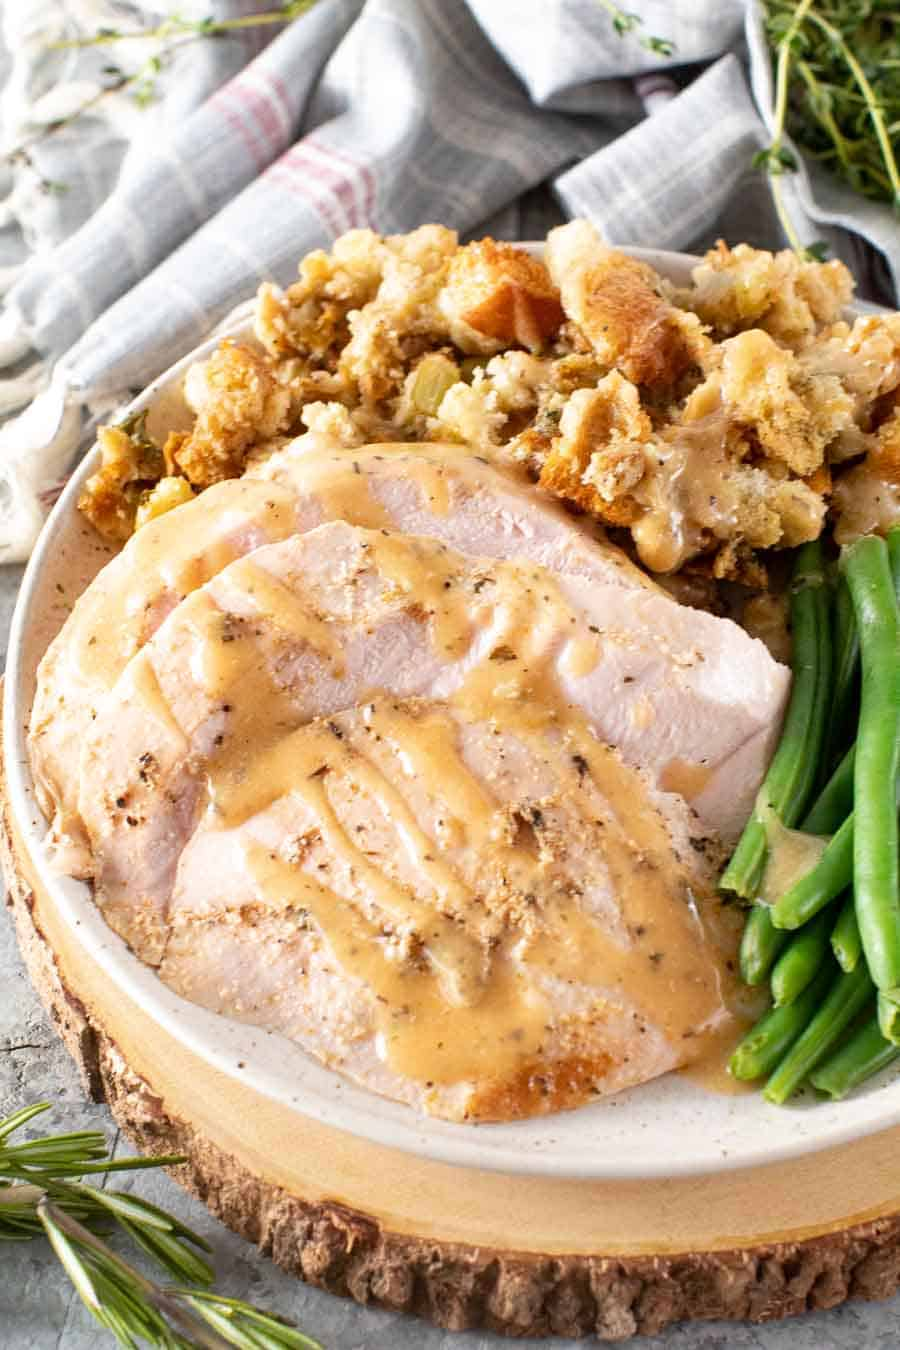 Sliced smoked turkey breasts, smoked stuffing, and green beans on a plate